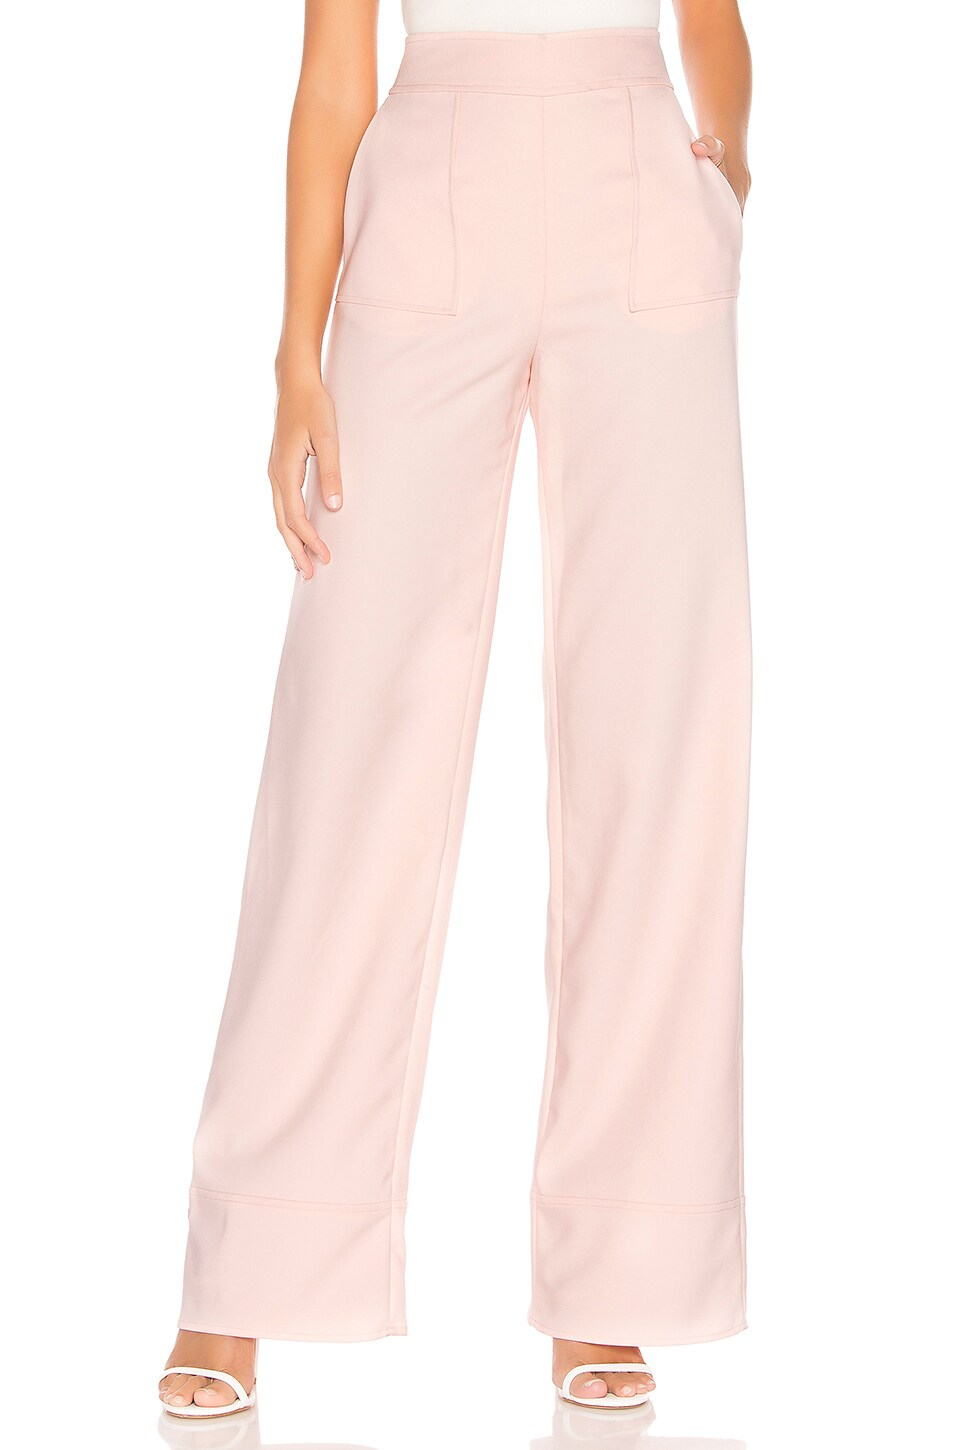 Lovers + Friends Sedge Pant in Blush